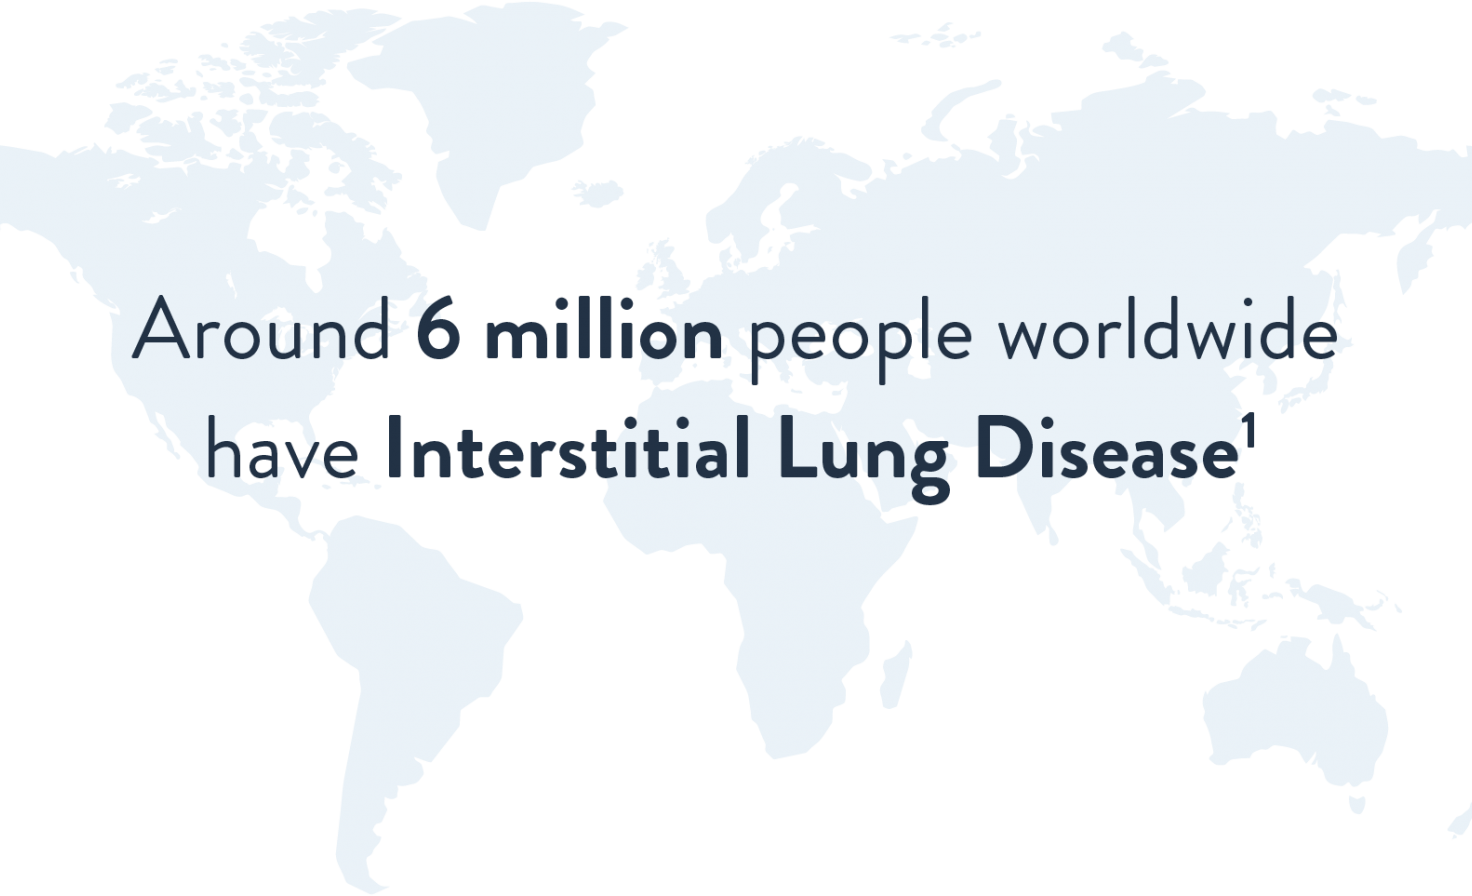 6 million people have ILD world map